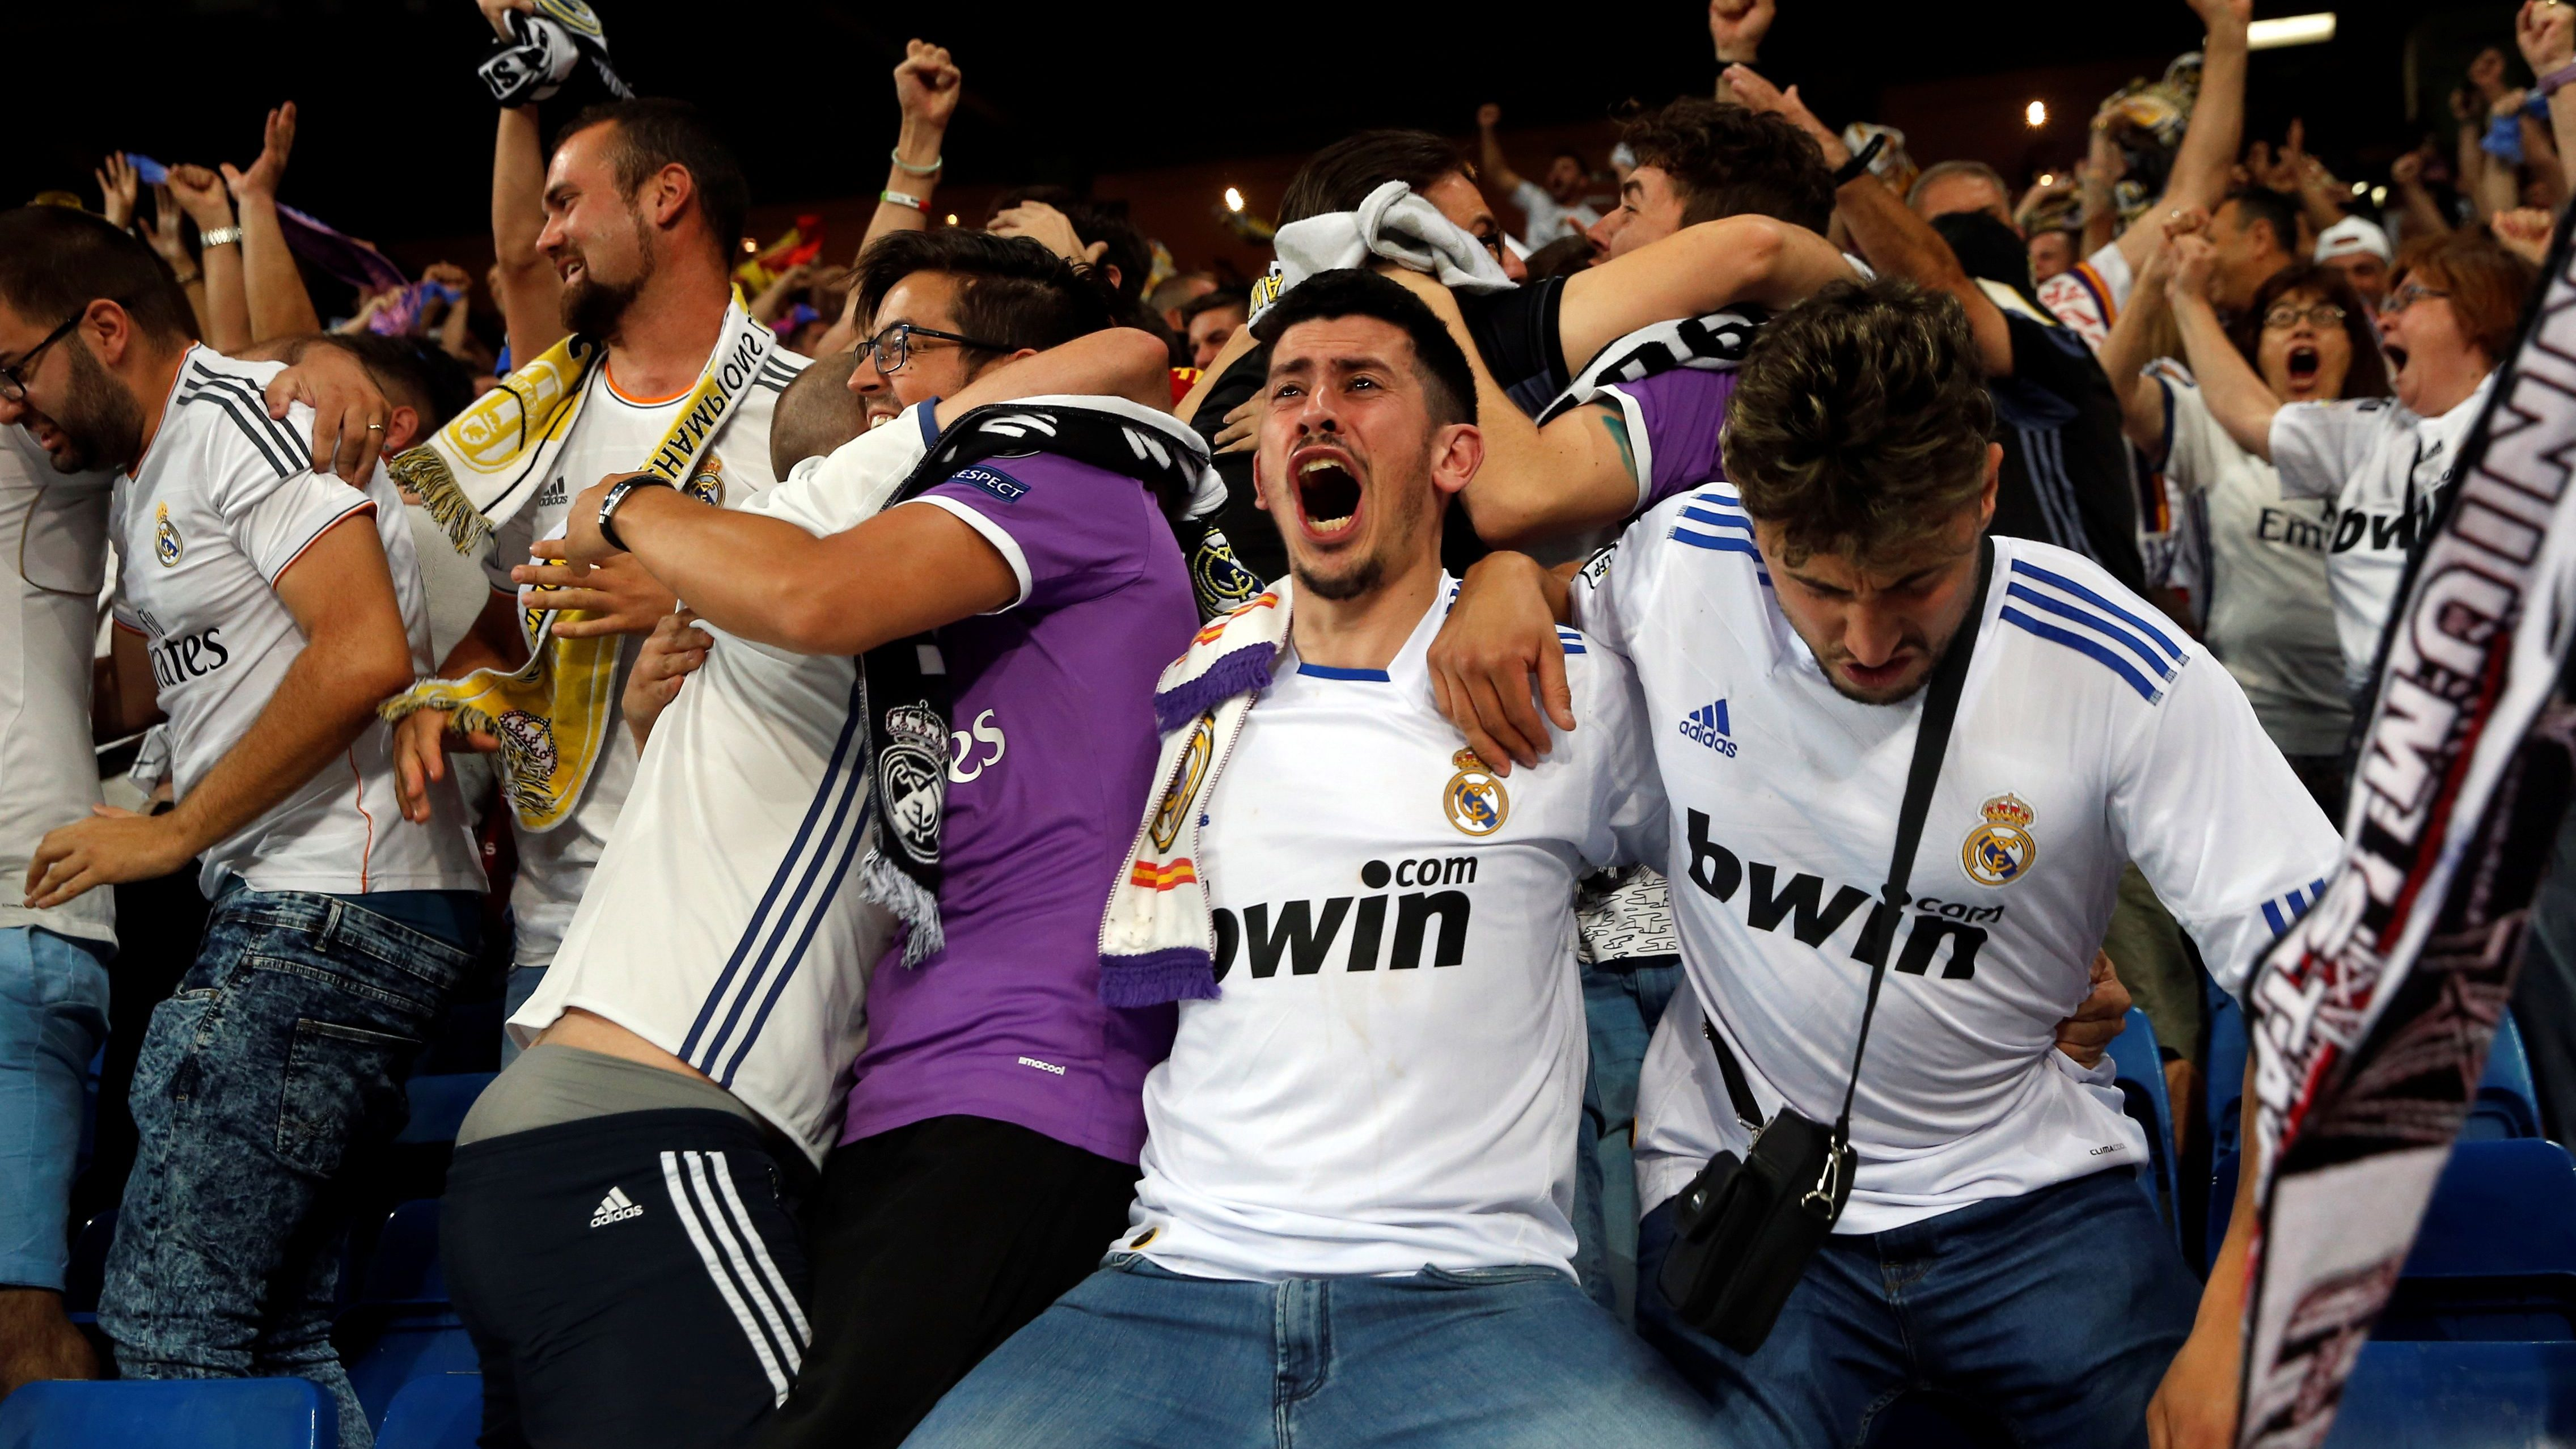 Football Soccer- Juventus v Real Madrid - UEFA Champions League Final - Santiago Bernabeu Stadium, Madrid, Spain - 3/6/17 Real Madrid fans celebrate a goal as they watch the Champions League final match on giant TV screens. REUTERS/Susana Vera - RC13102076B0